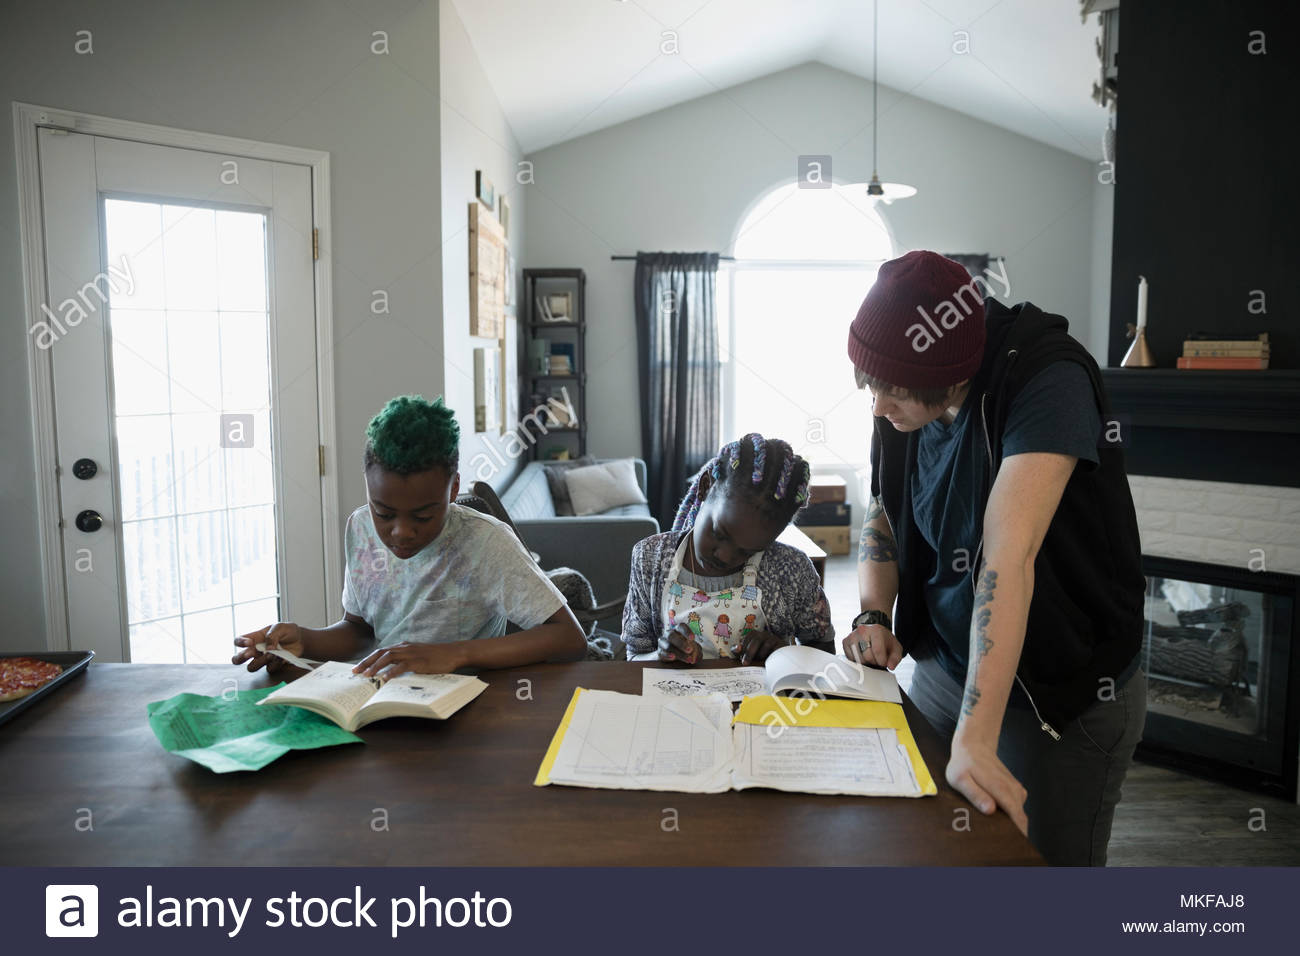 Tutor helping brother and sister with homework at dining table - Stock Image